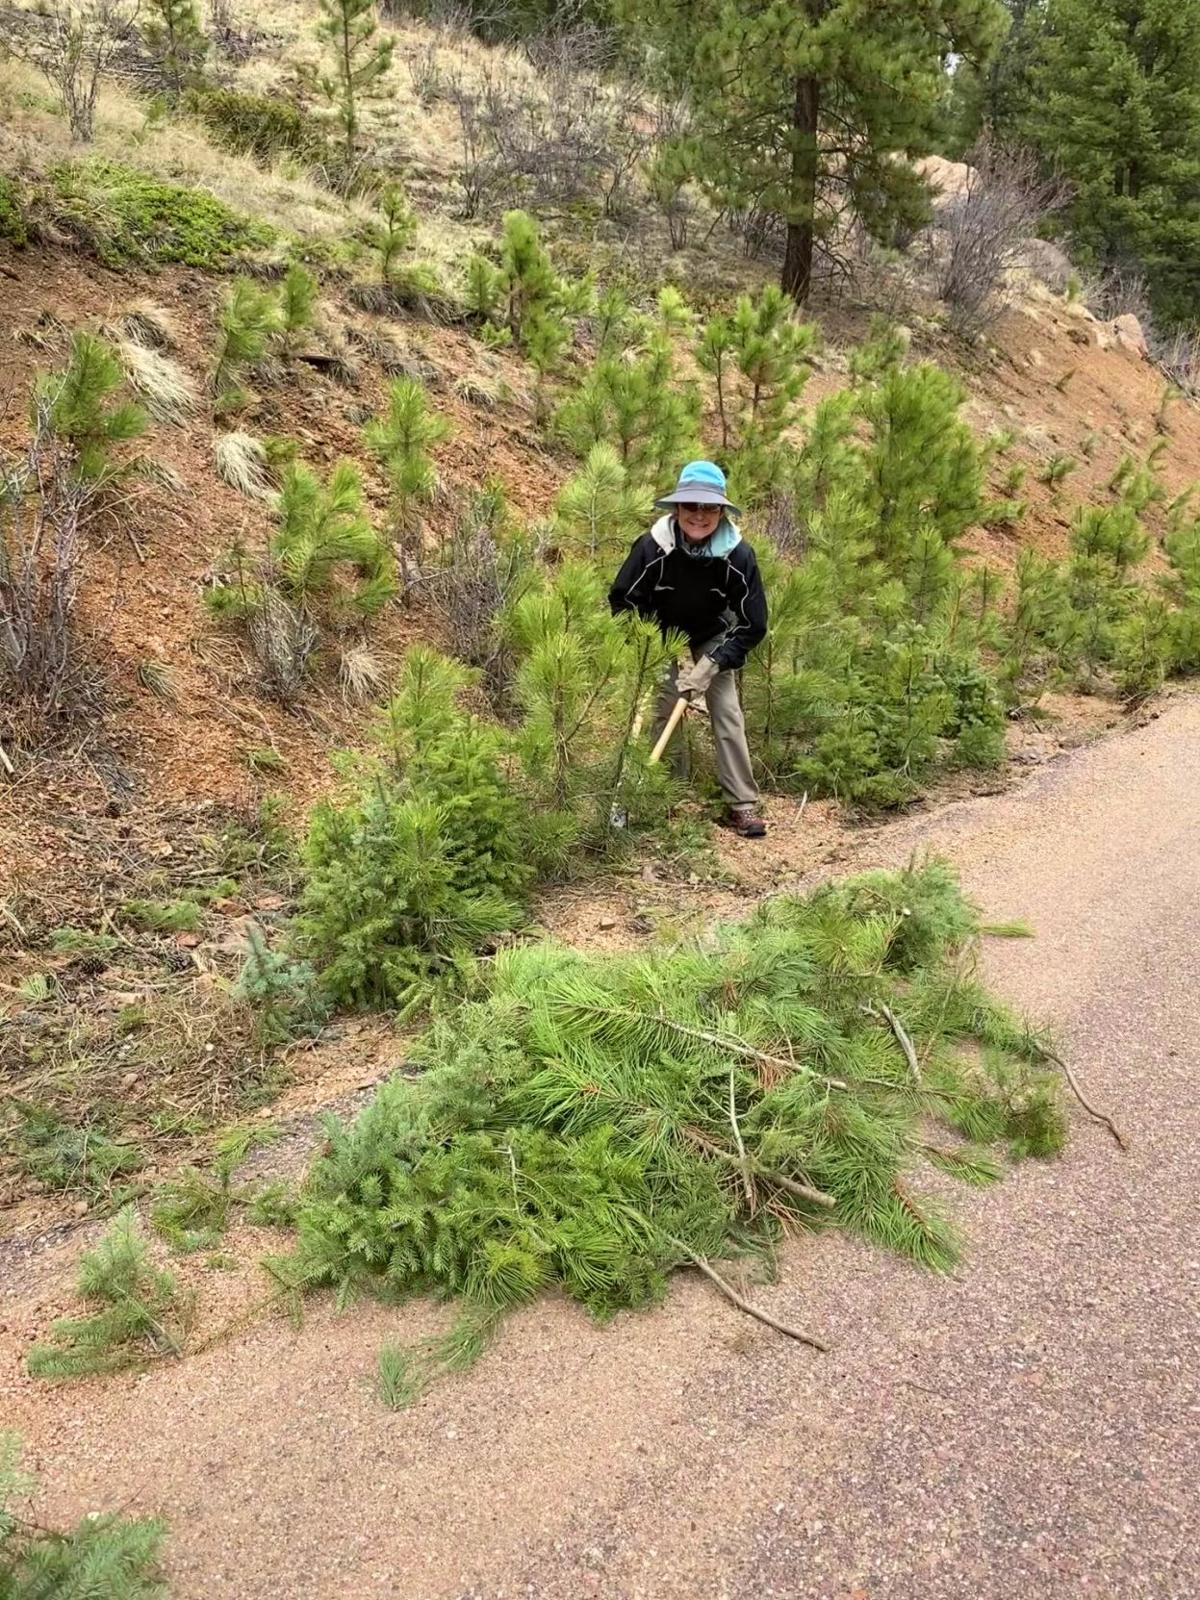 Working to keep Majestic Park safe